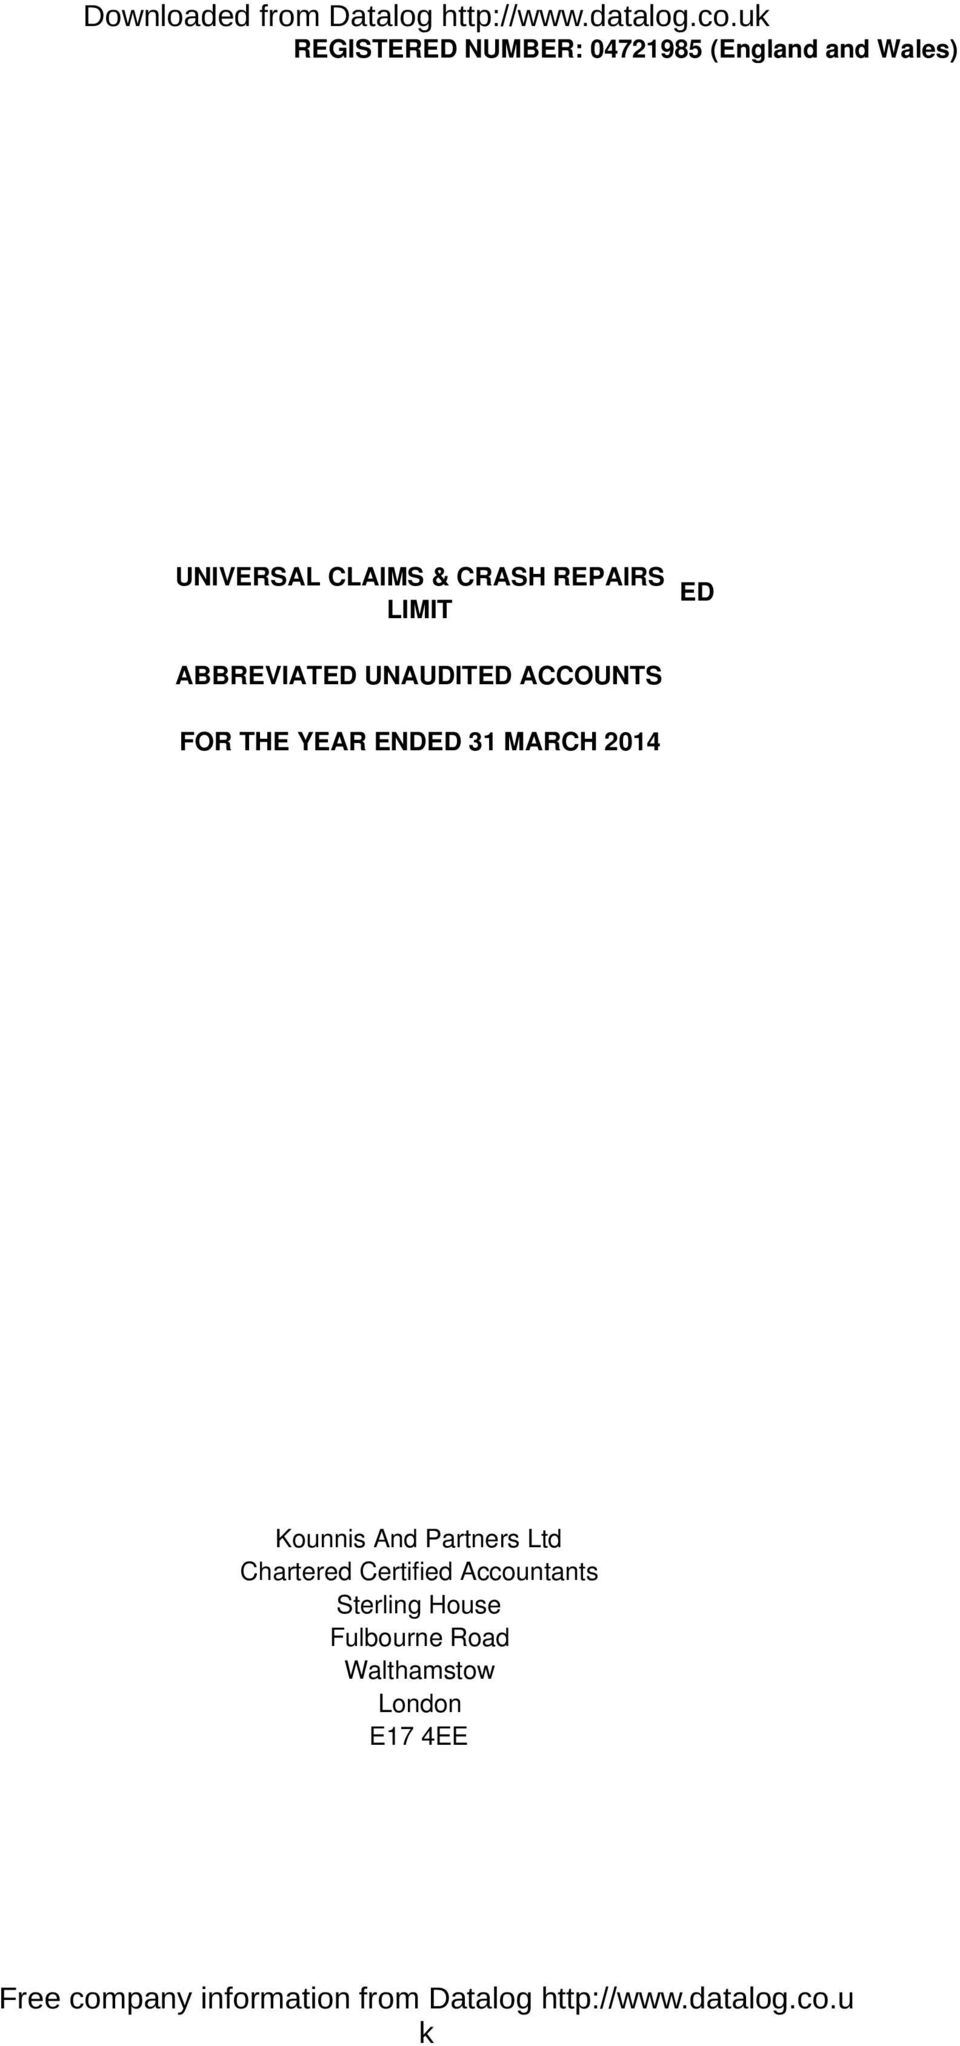 REPAIRS LIMIT ED ABBREVIATED UNAUDITED ACCOUNTS FOR THE YEAR ENDED 31 MARCH